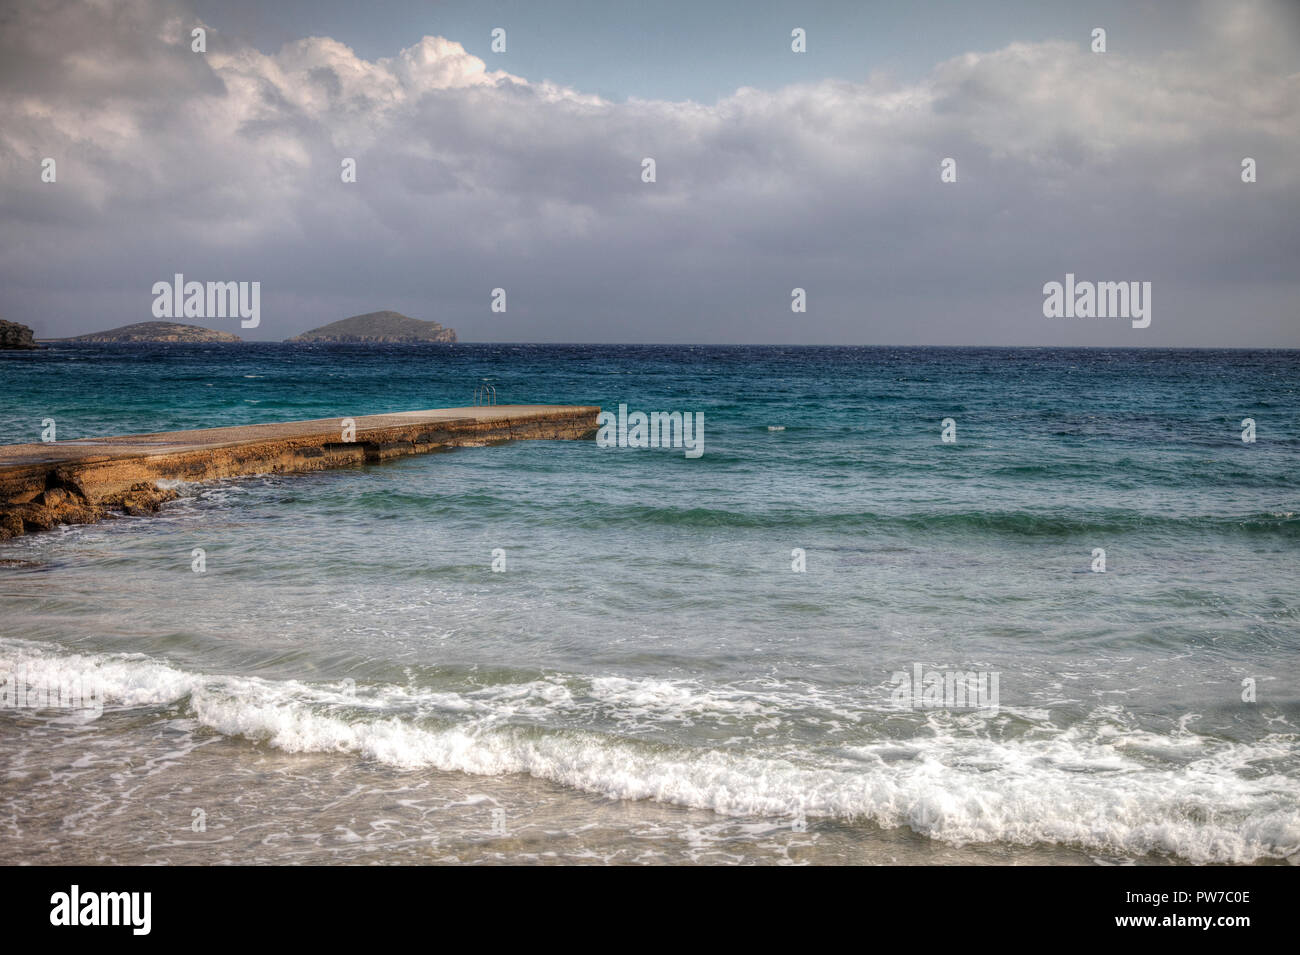 Winter seascape on the island of Syros with pier on the far left.Location village of Azolimnos in Syros, Greece. - Stock Image